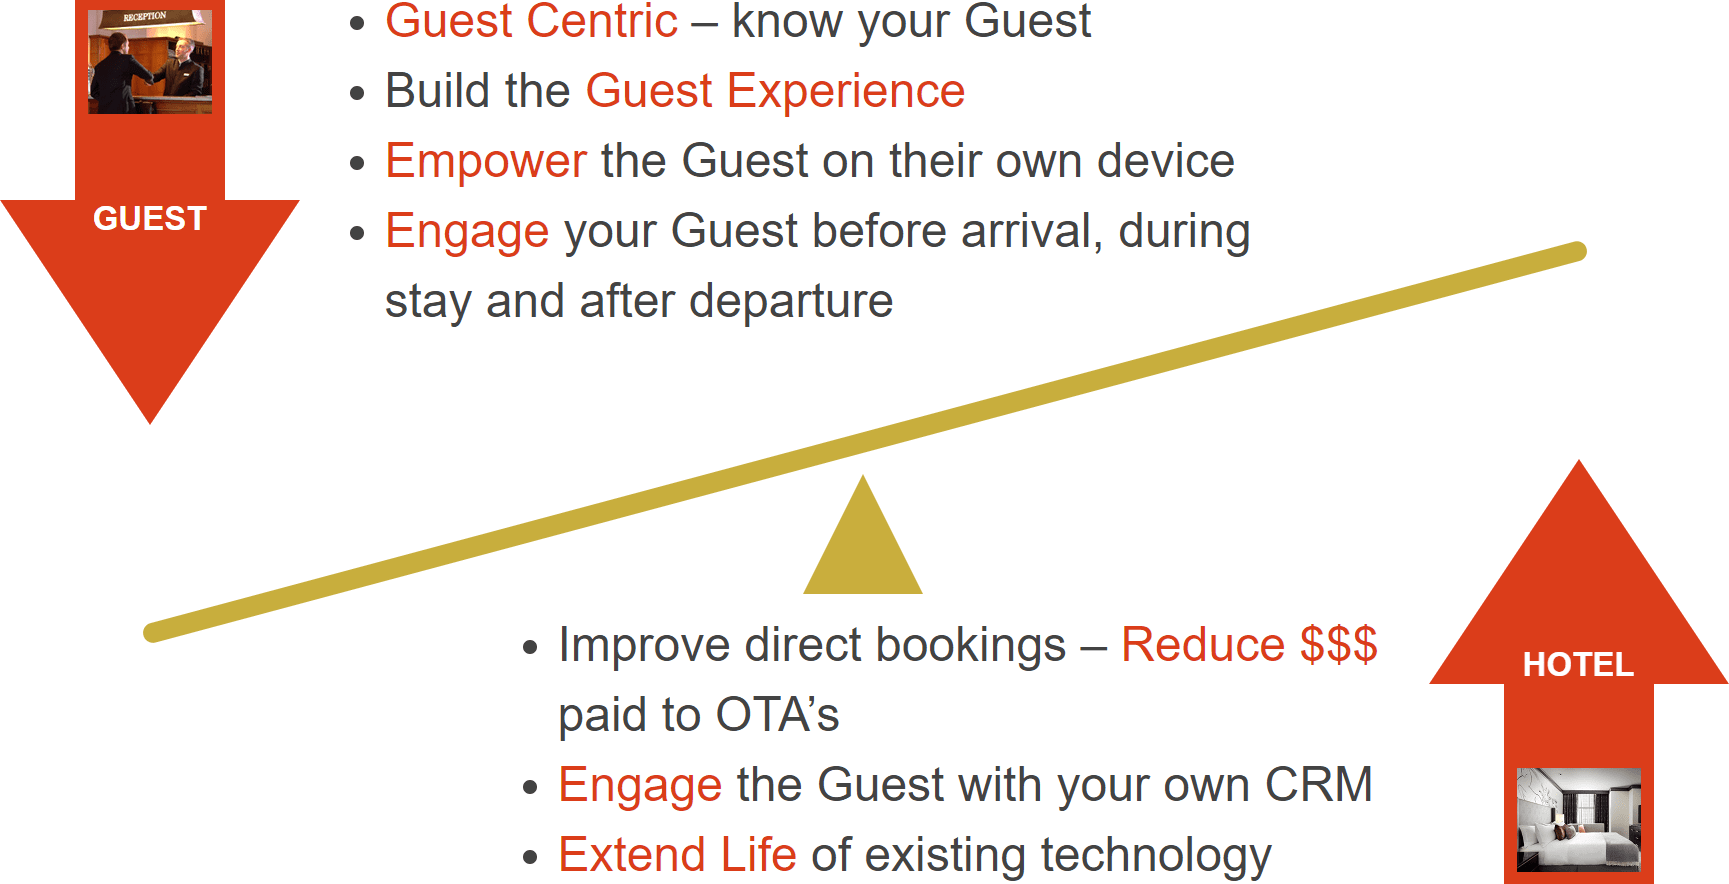 Empowering Your Guest